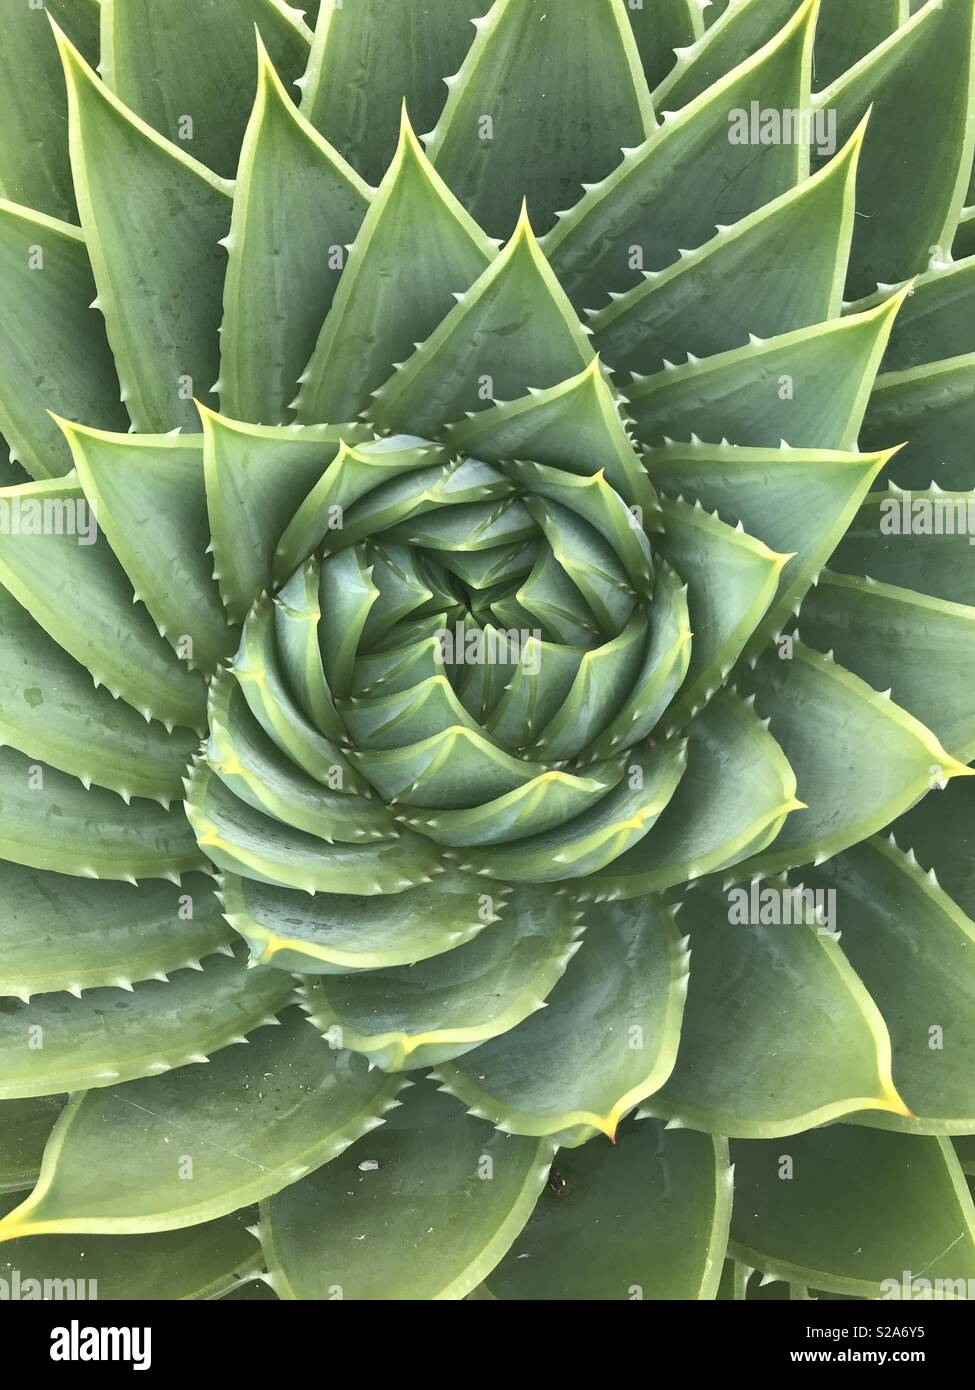 Aesthetic Succulent High Resolution Stock Photography And Images Alamy